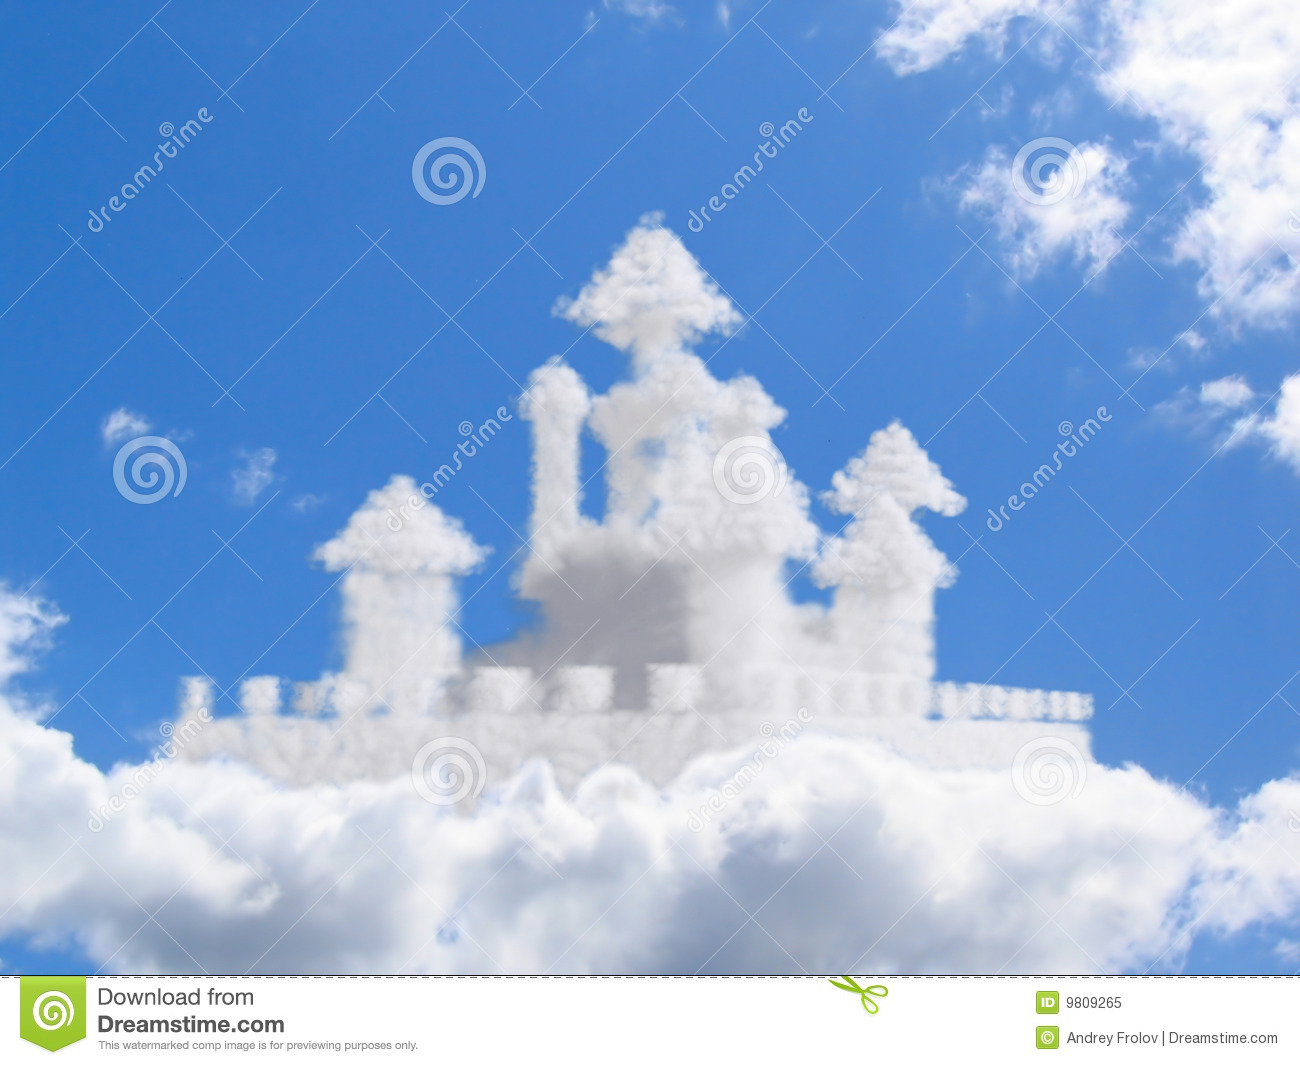 Abstract concept for earth nature religion stock photo image of fantasy castle in clouds royalty free stock photo kristyandbryce Gallery